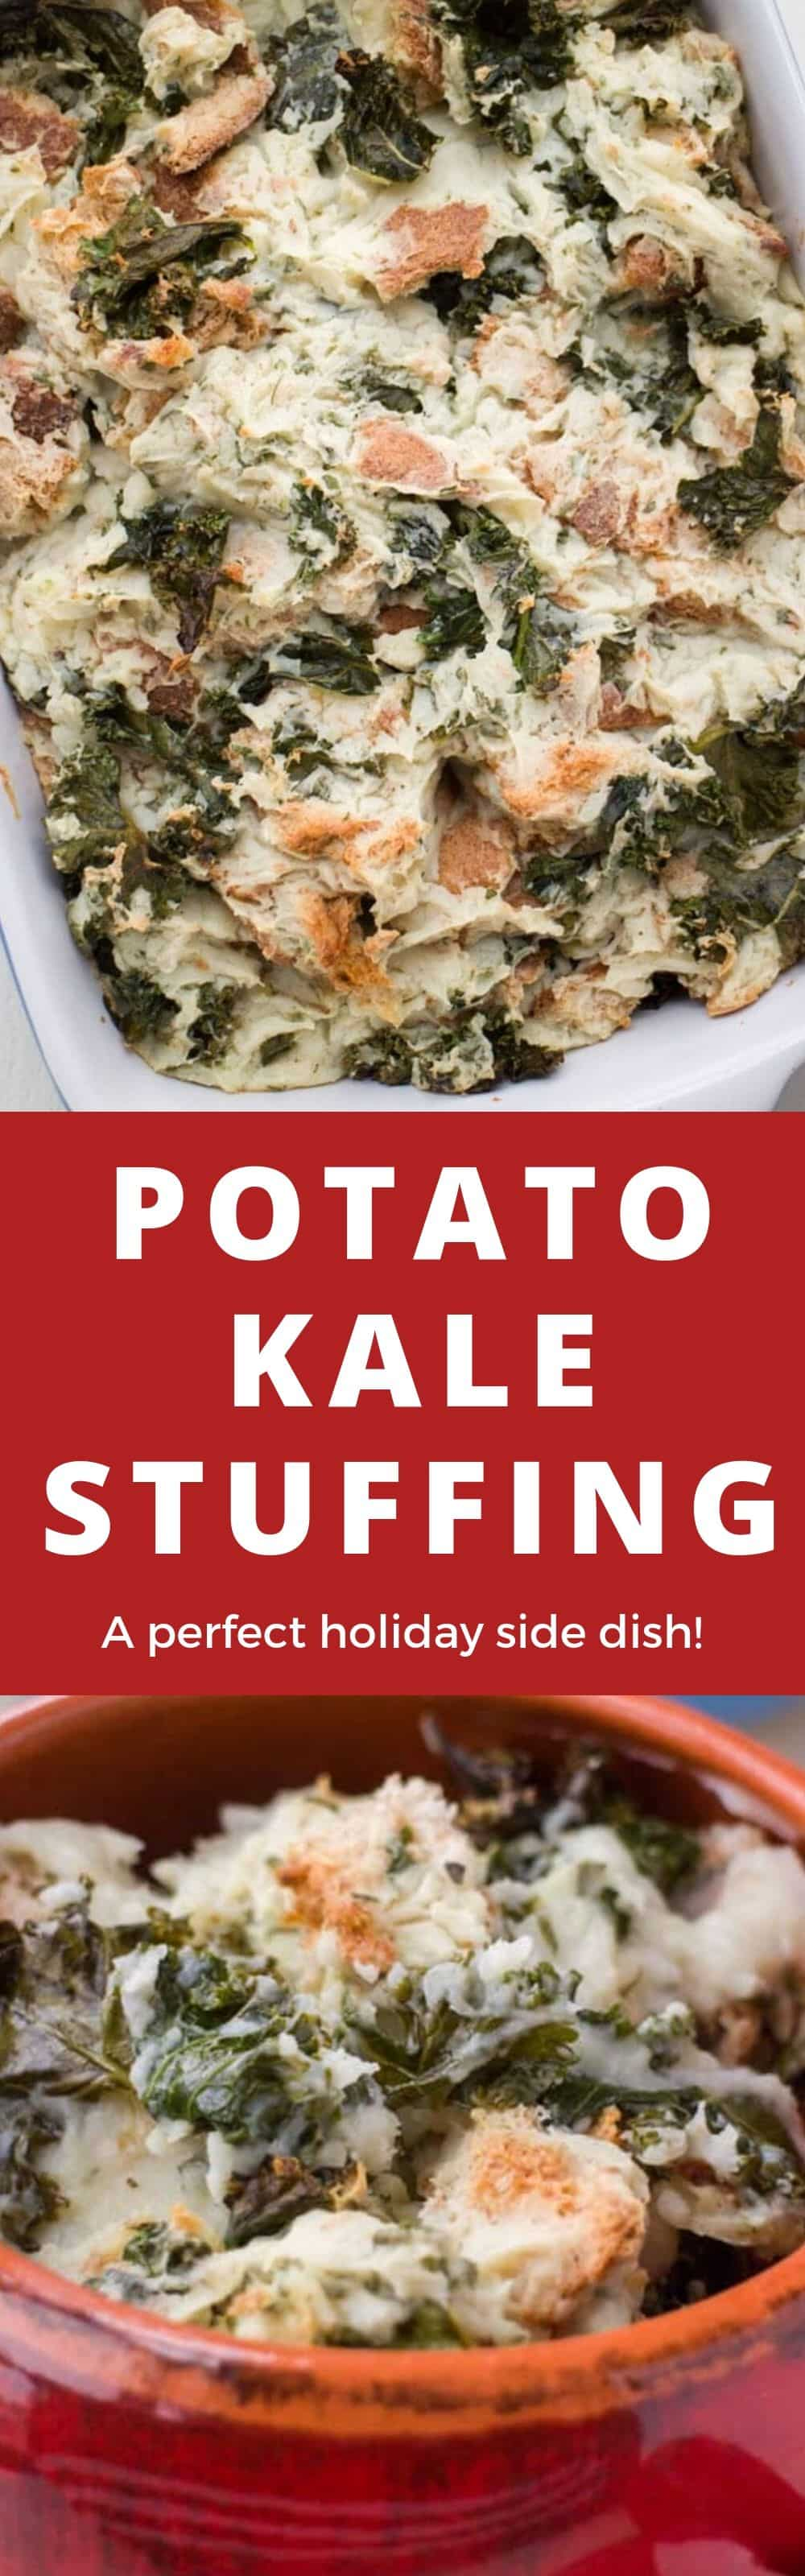 This Potato Kale Stuffing is a comfort food recipe that goes perfect with a turkey, chicken or pork chops. It's simple to make because it's made with instant potatoes! Potato Kale Stuffing is also always requested at Thanksgiving! The perfect hearty side dish for your holiday meal.